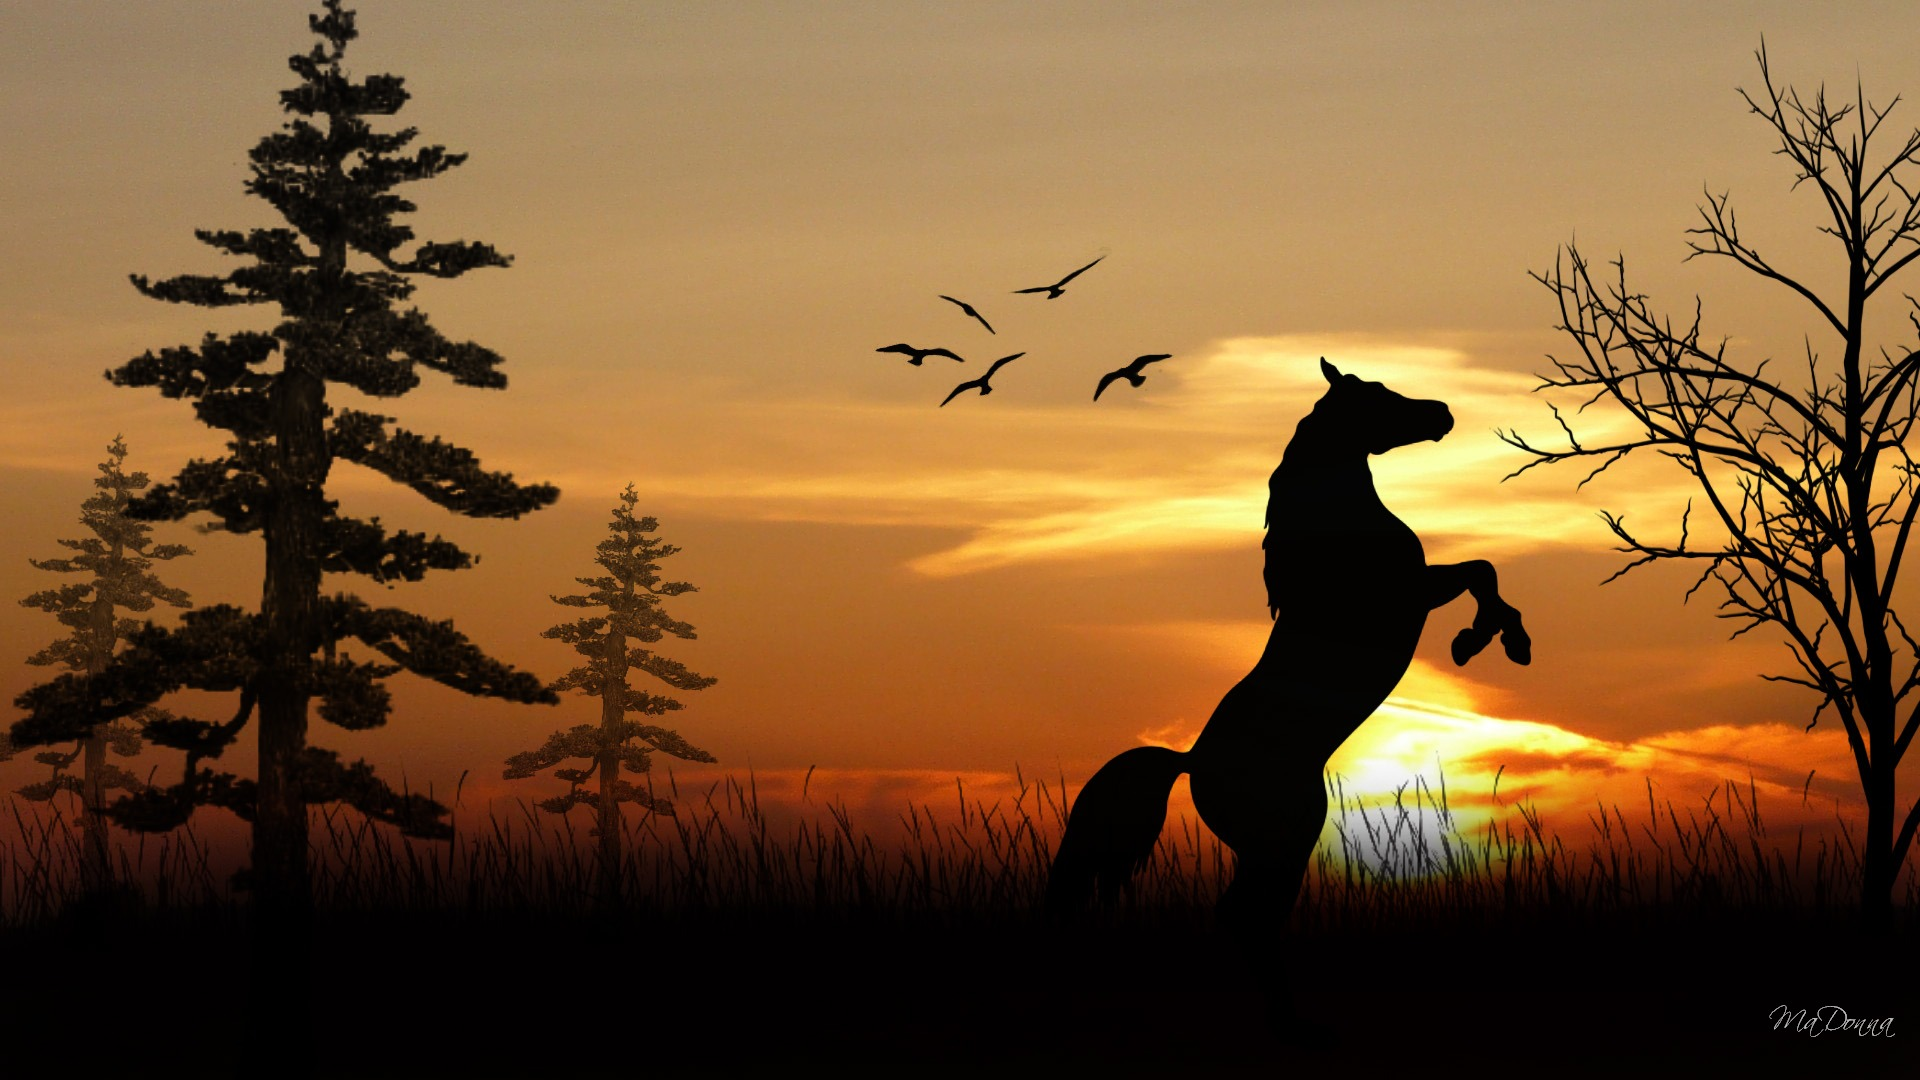 download wallpaper horses sunset - photo #19